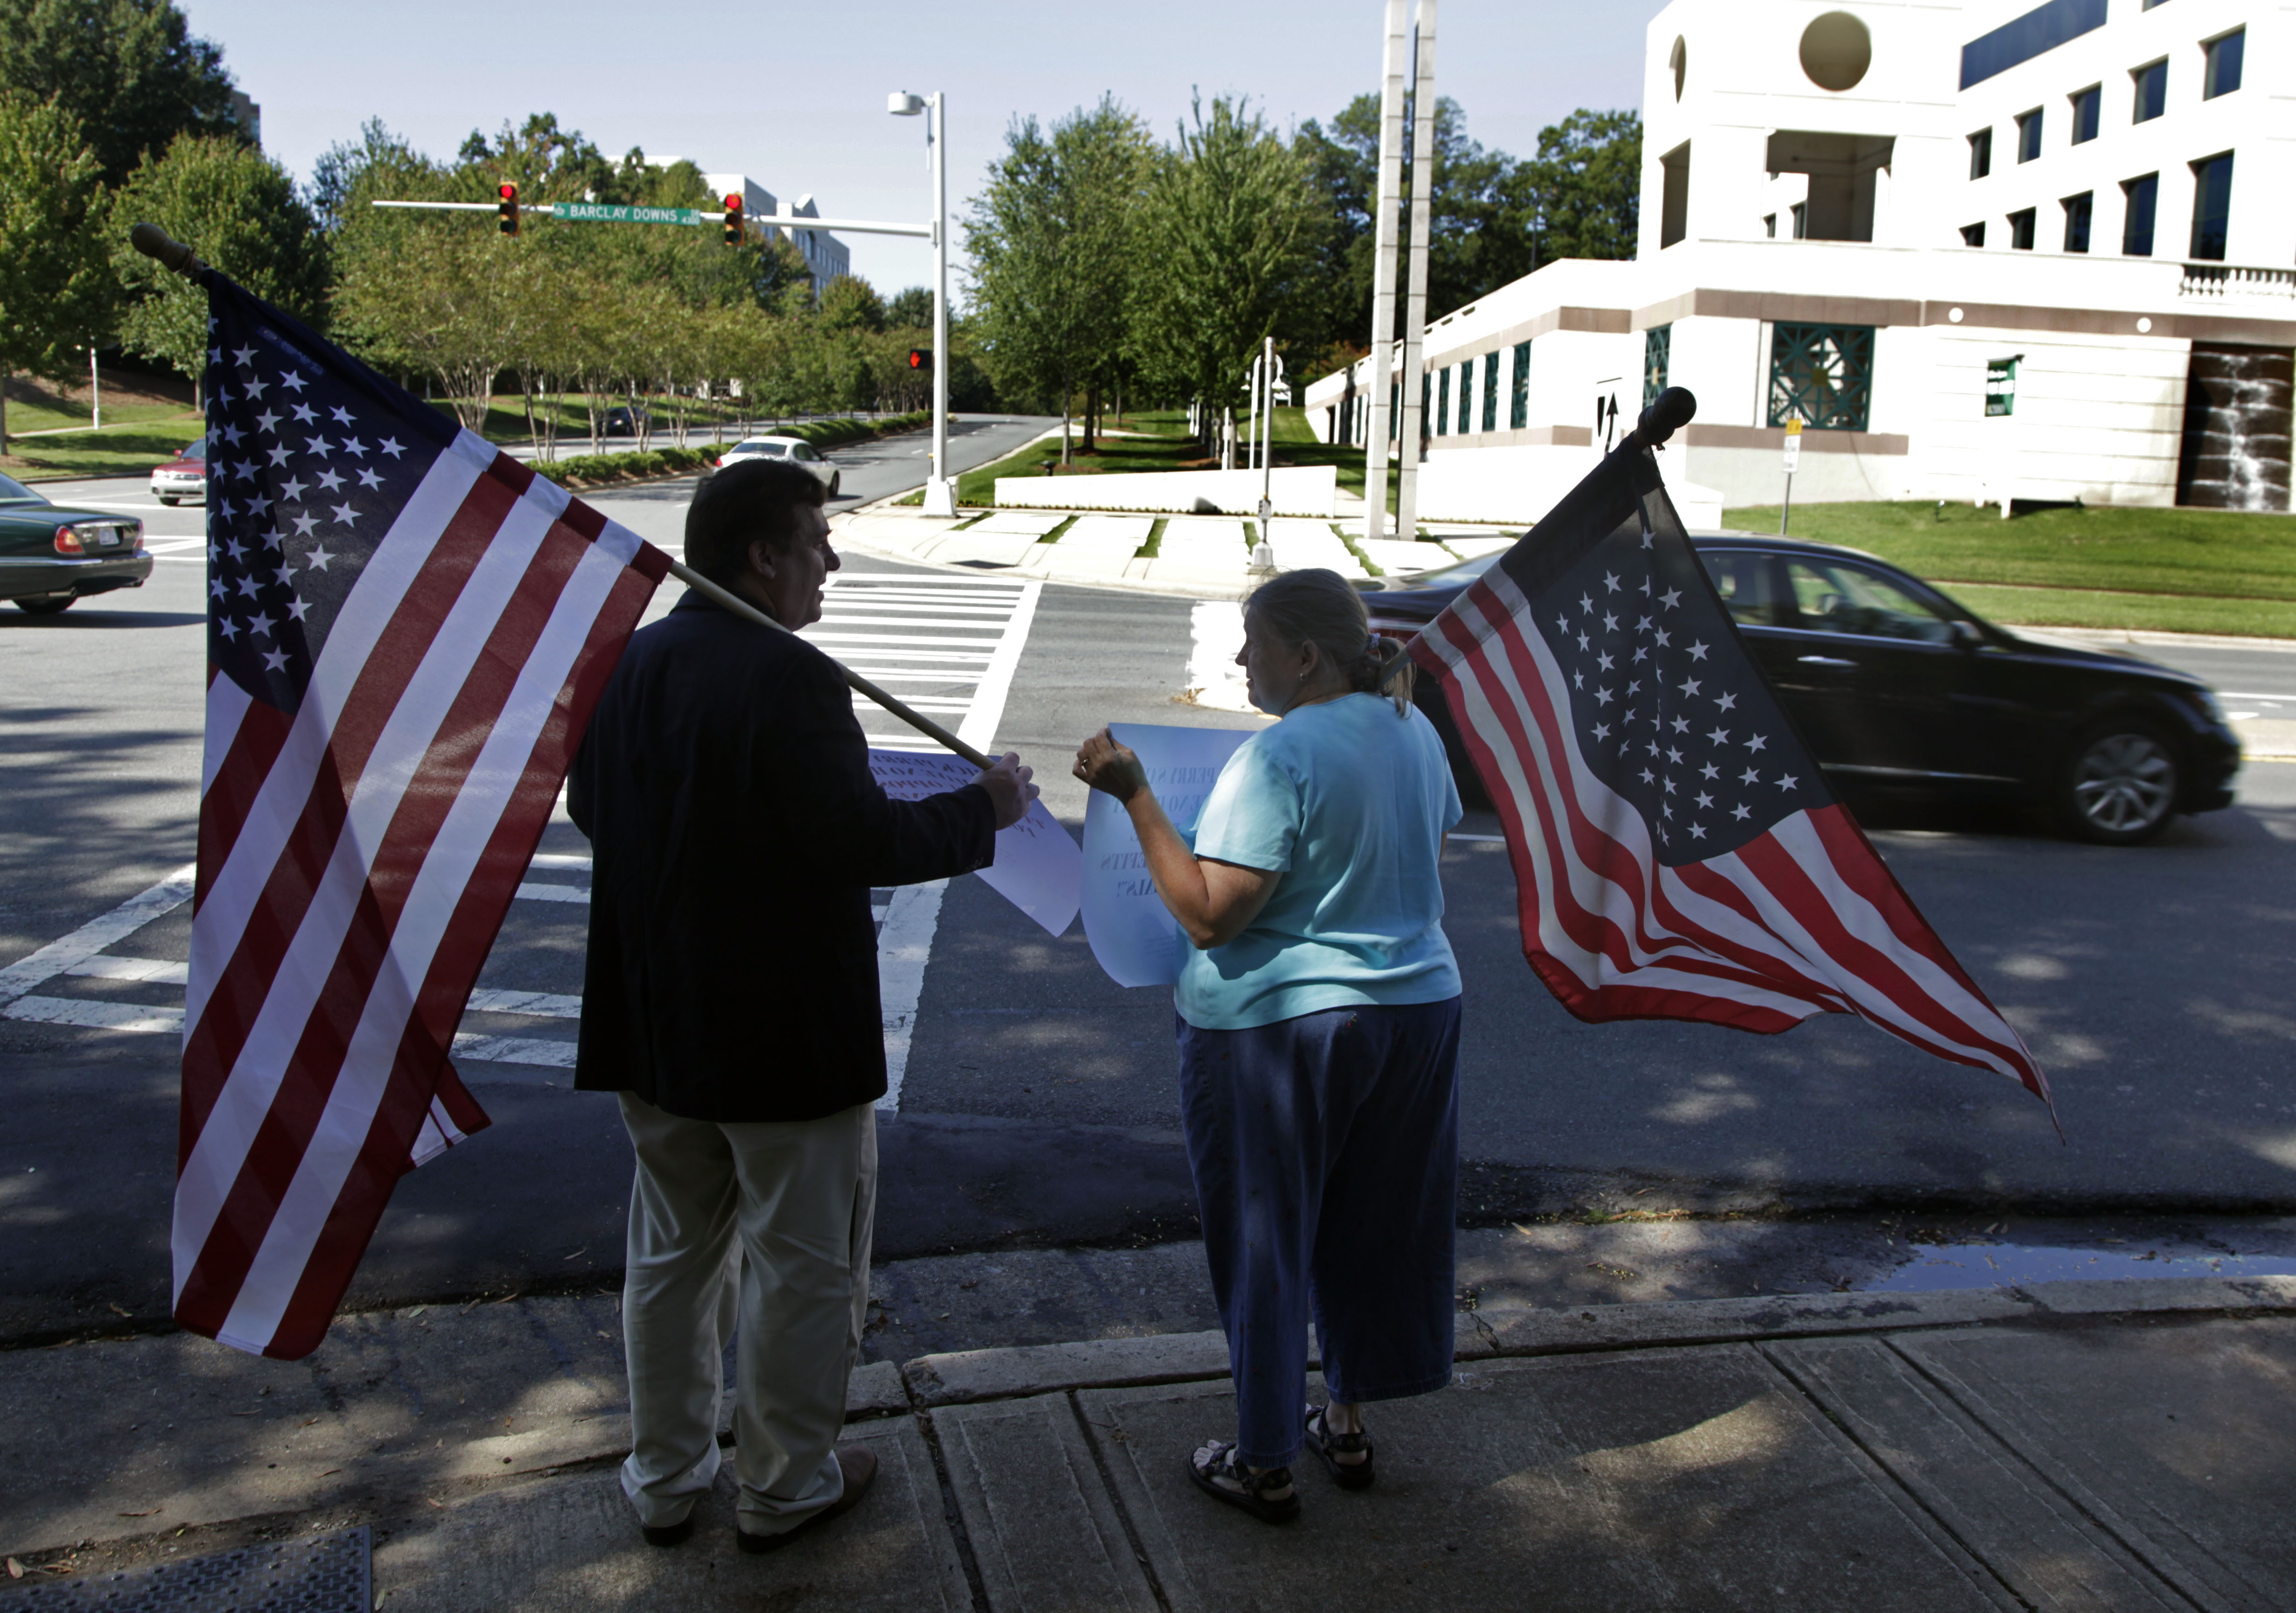 William Gheen, left, president of the political action committee ALIPAC, protests near a fundraiser for Gov. Rick Perry in Charlotte, North Carolina, Sept. 29, 2011. The group was protesting Perry's support of in-state tuition for illegal aliens.